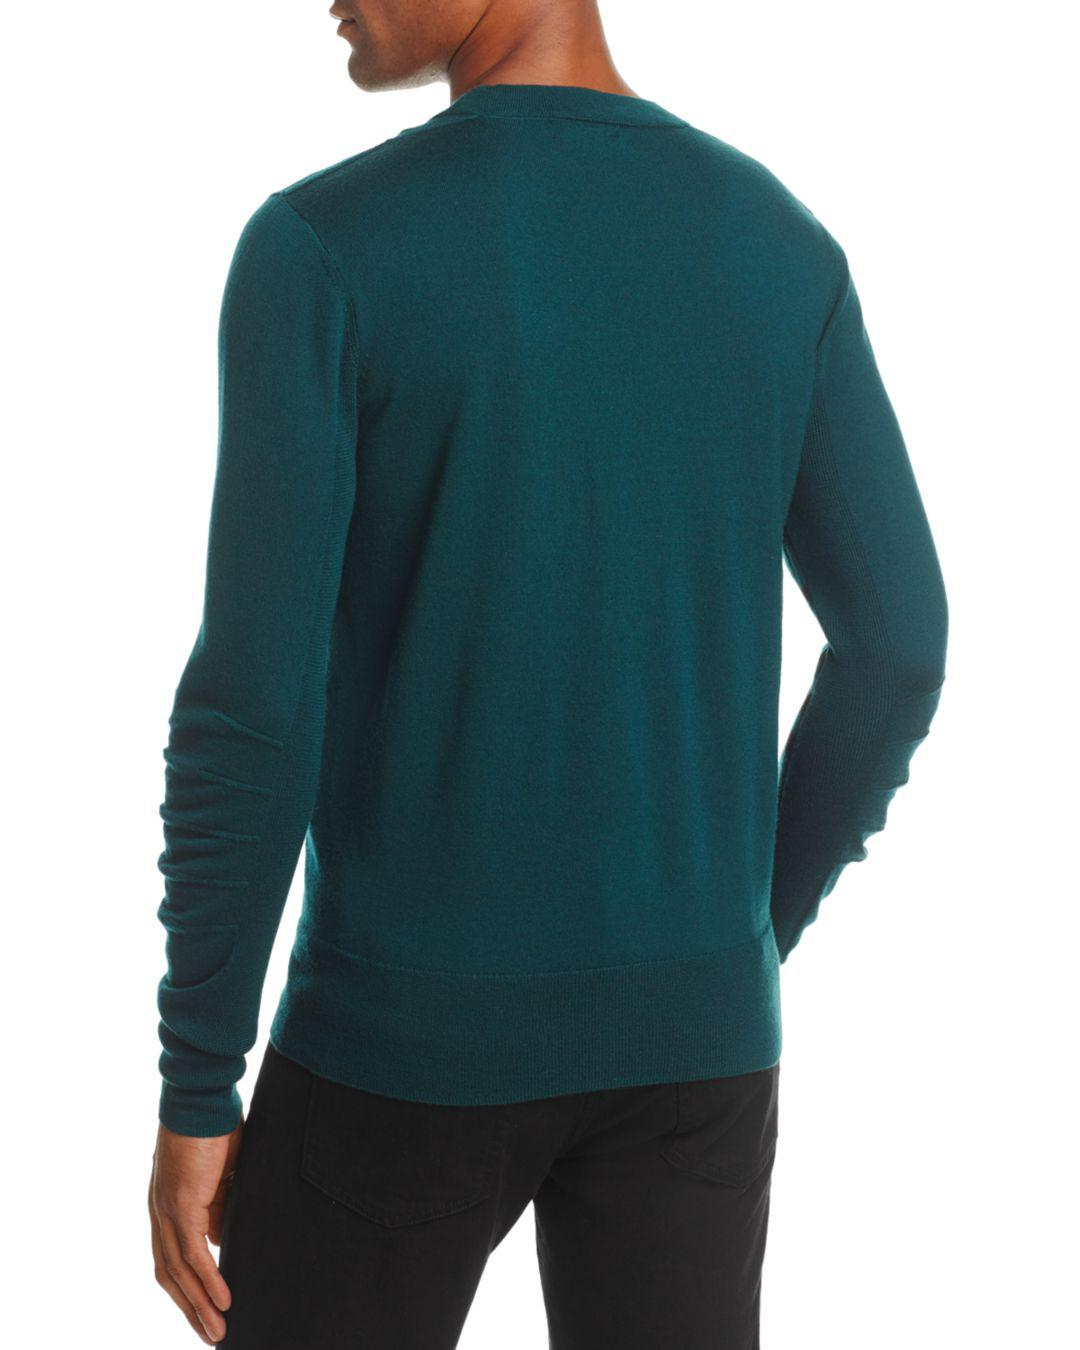 528bd7aaa Lyst - Burberry Carter Crewneck Sweater in Green for Men